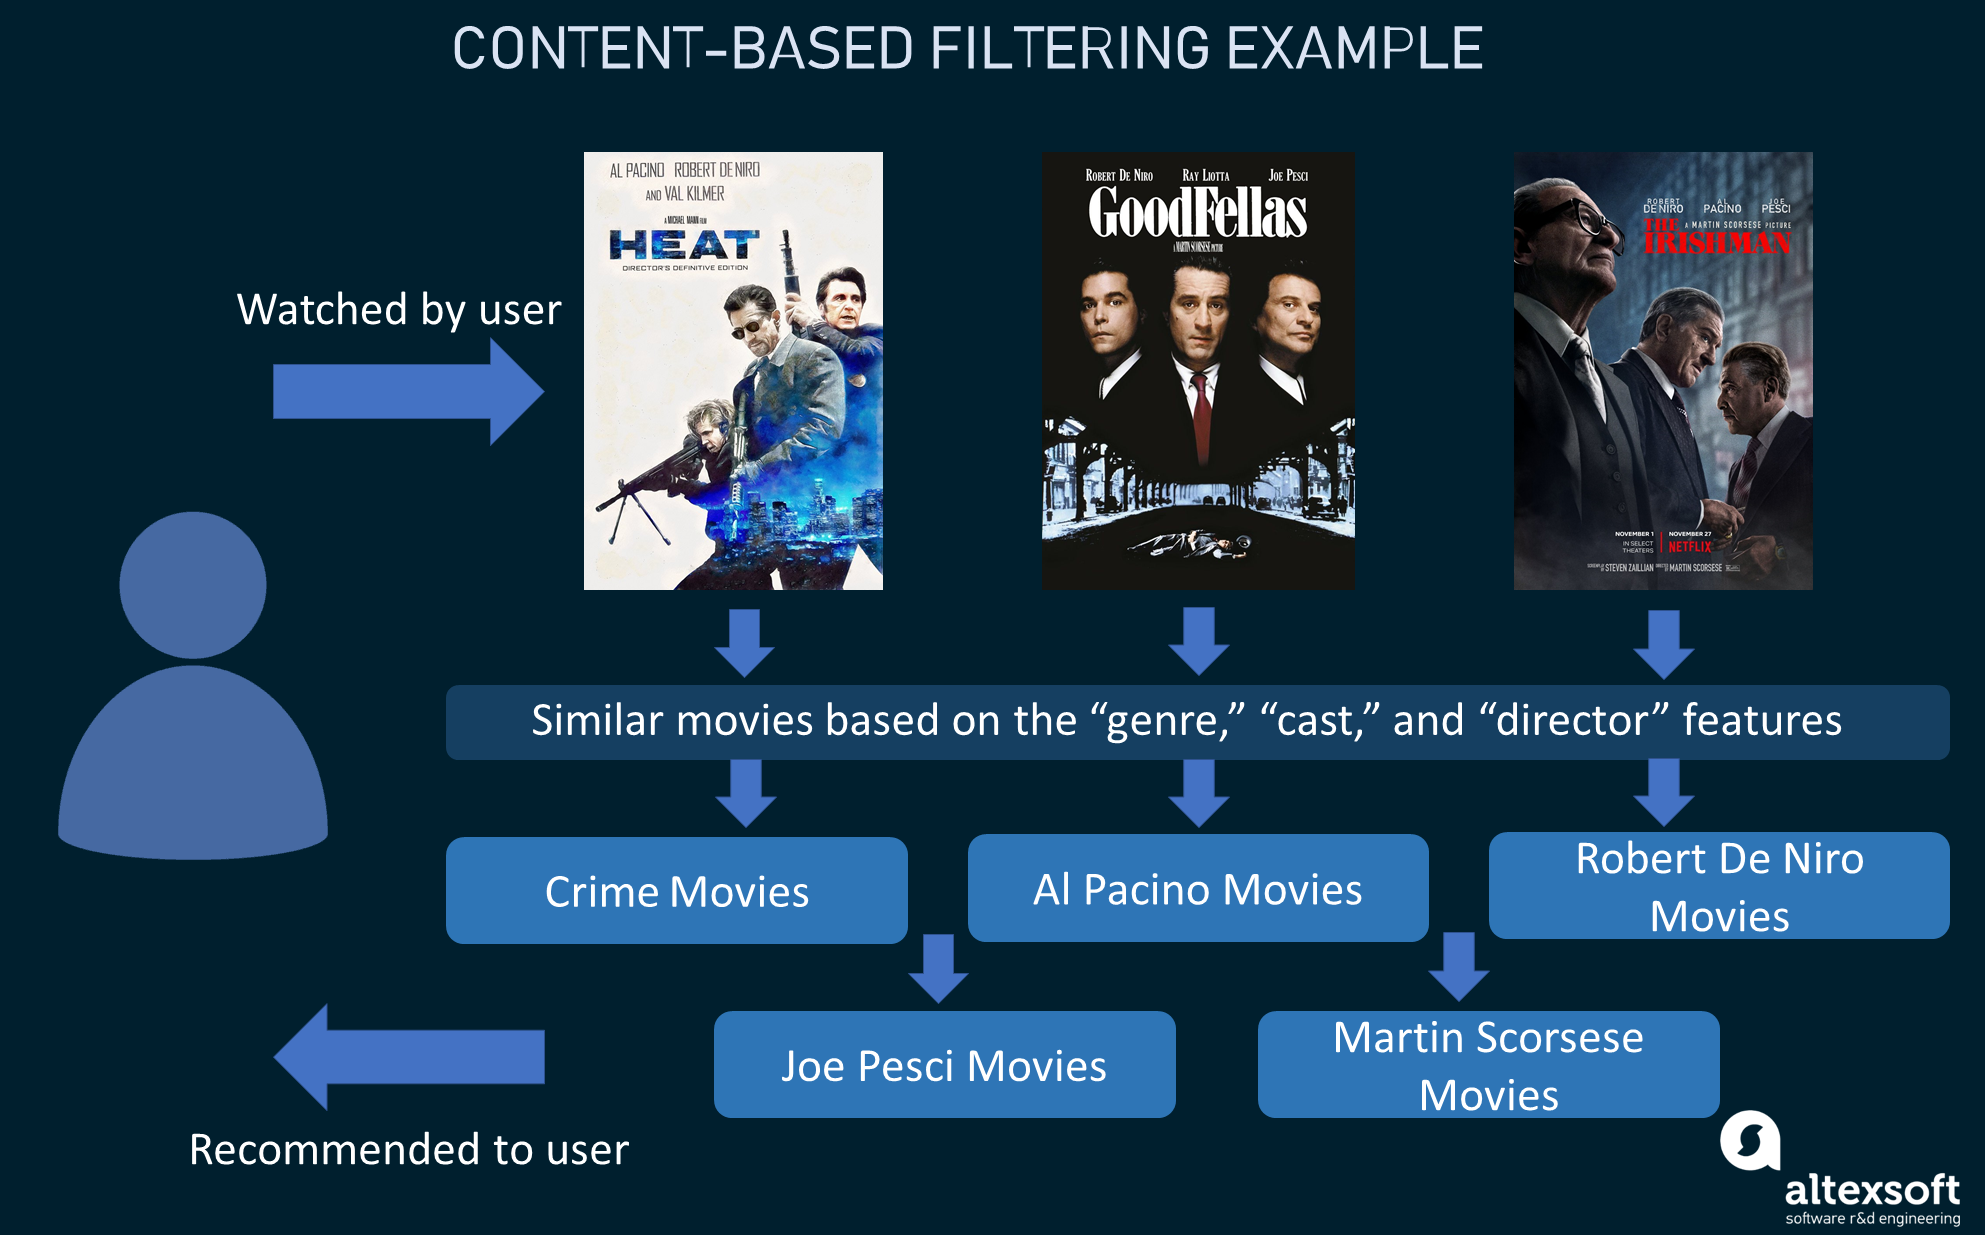 Content-based filtering example